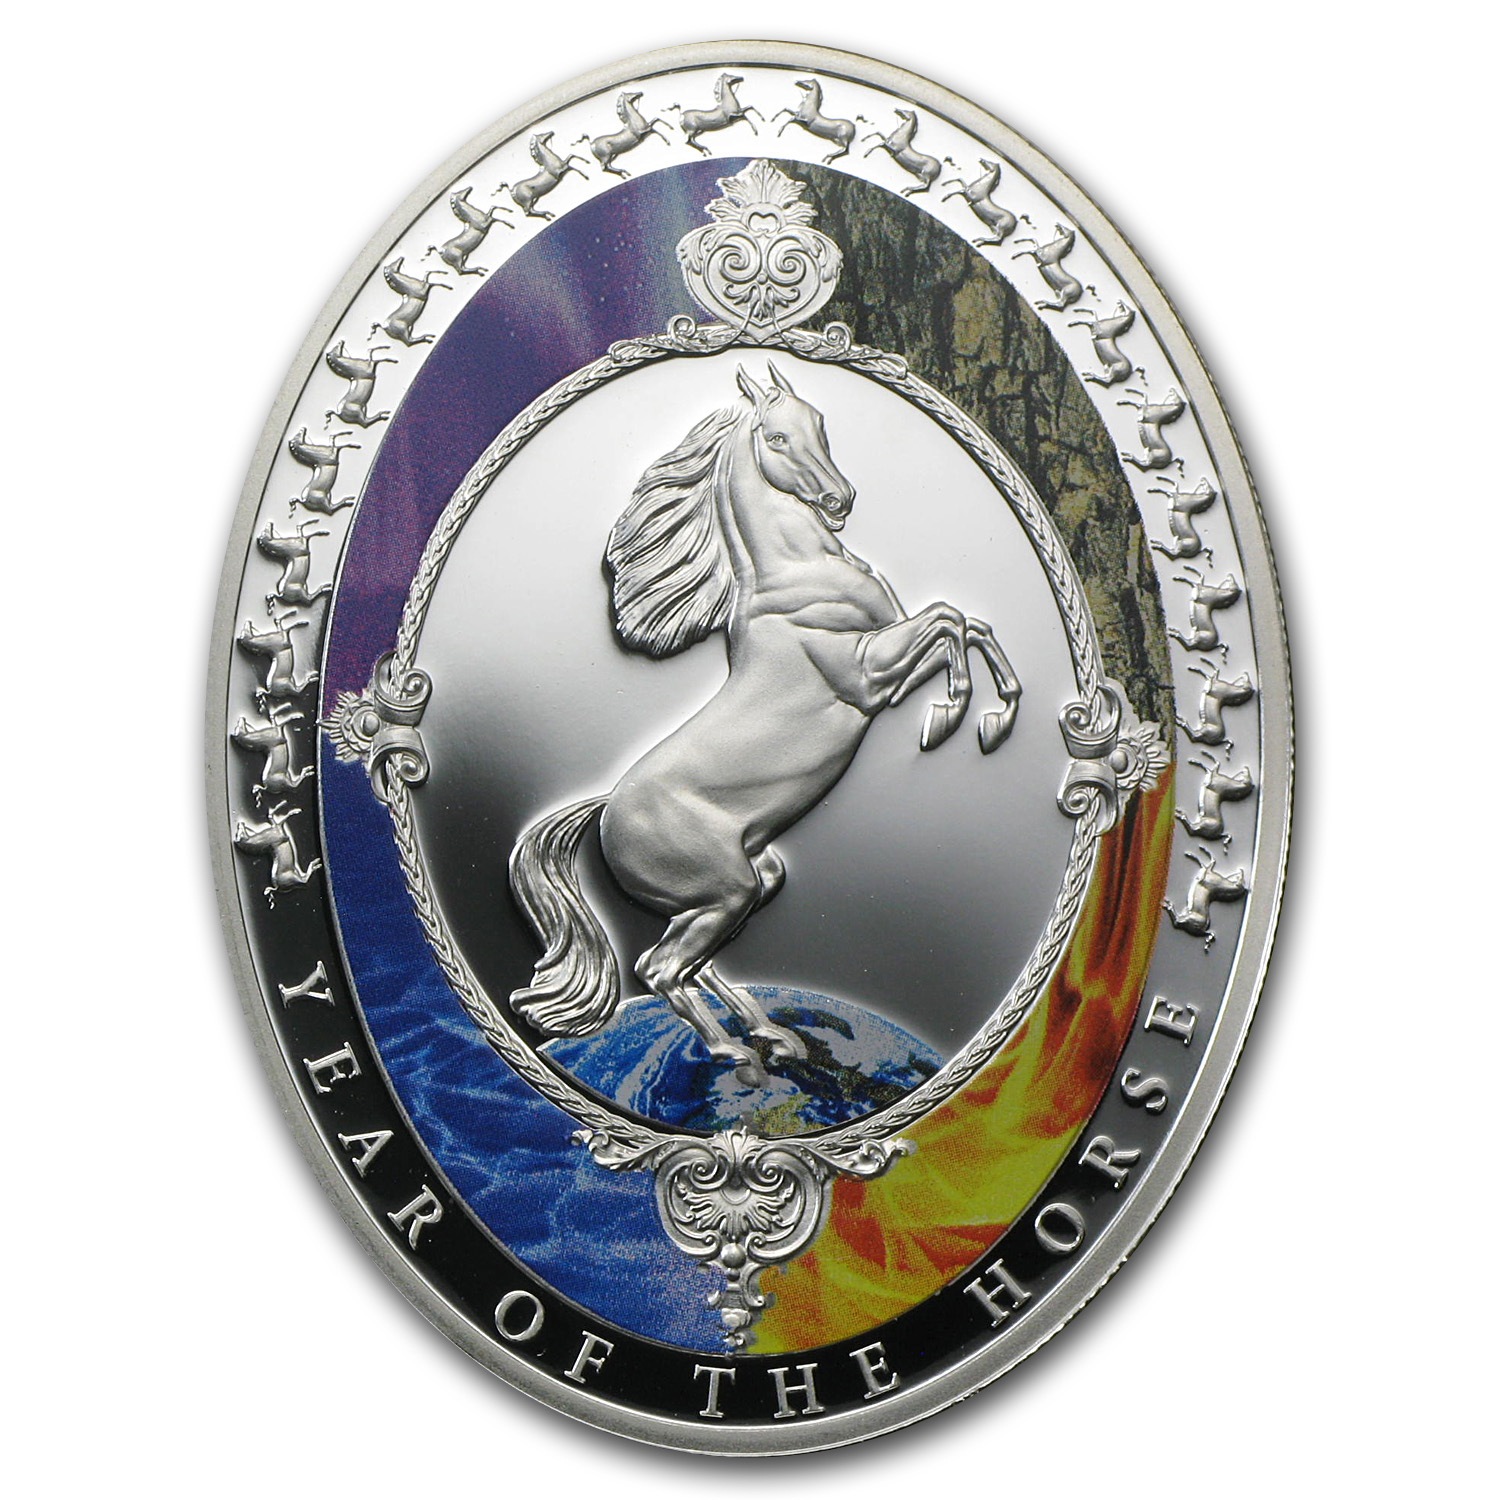 2014 1 oz Silver Year of the Horse Oval shaped Elements Proof